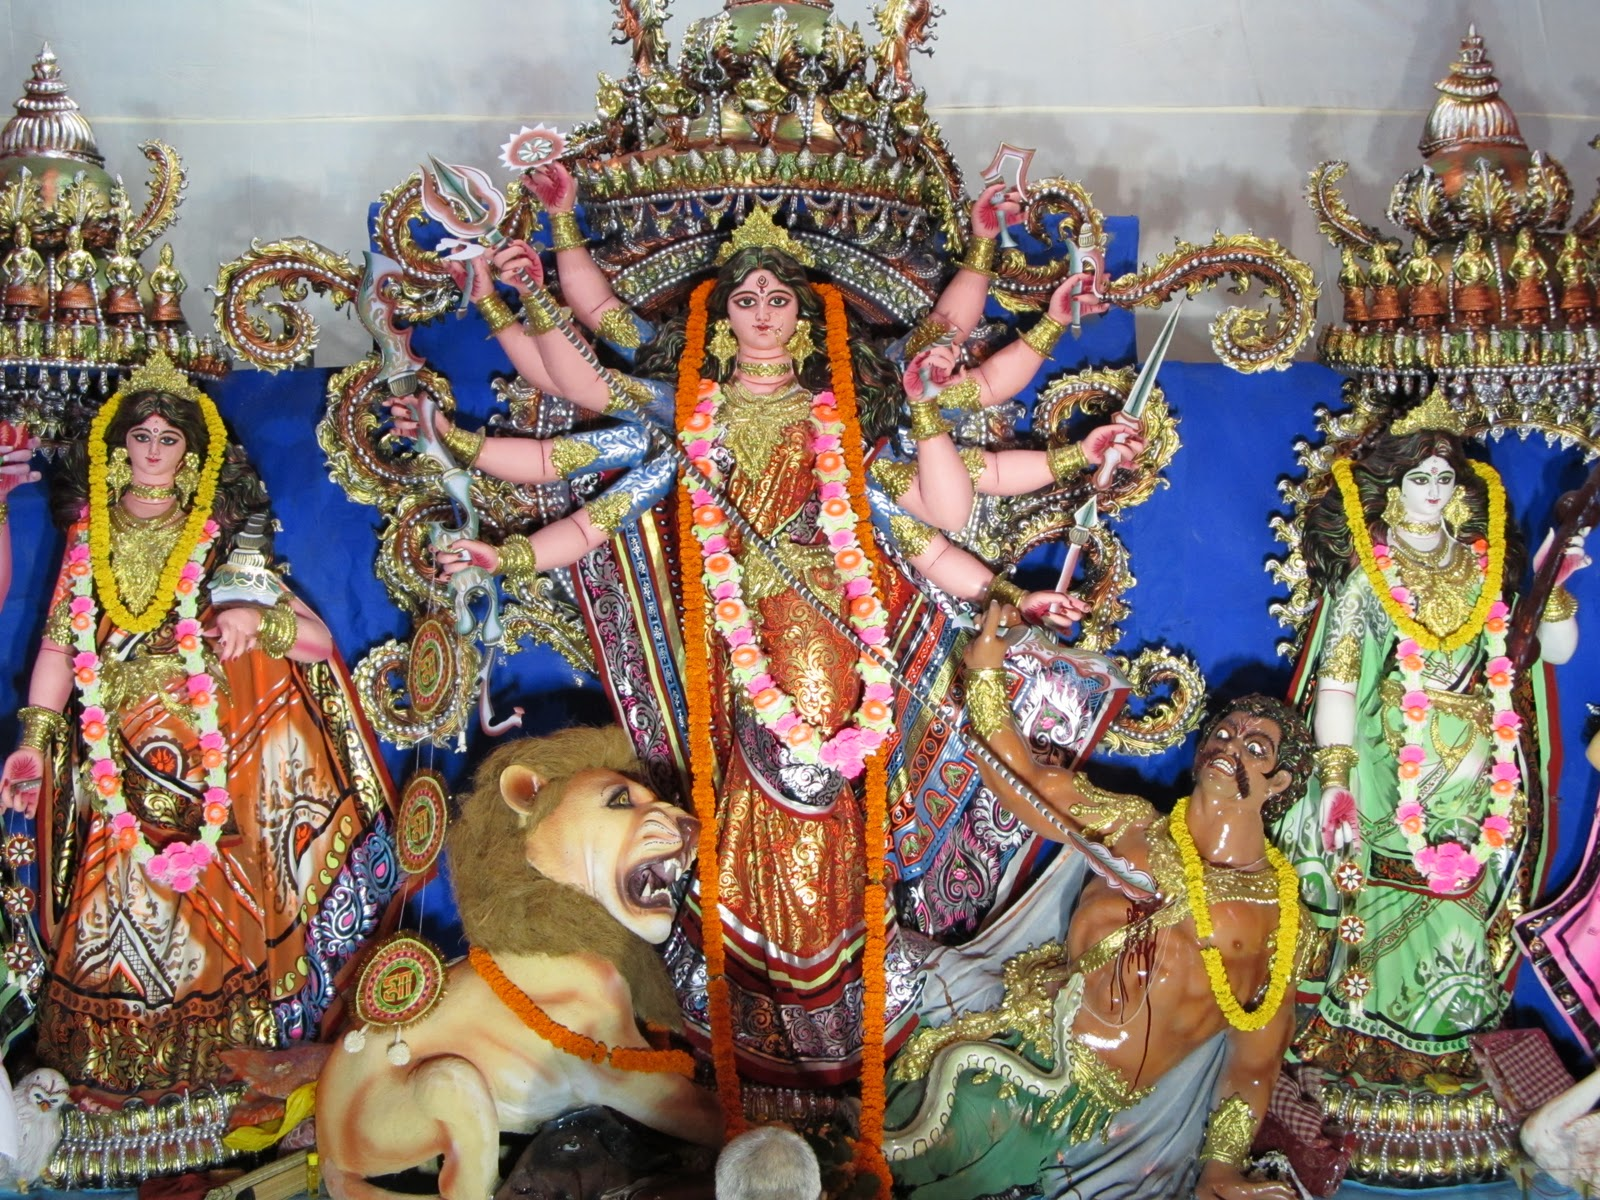 Durga Puja Hd Wallpaper: HD Durga Maa Wallpapers